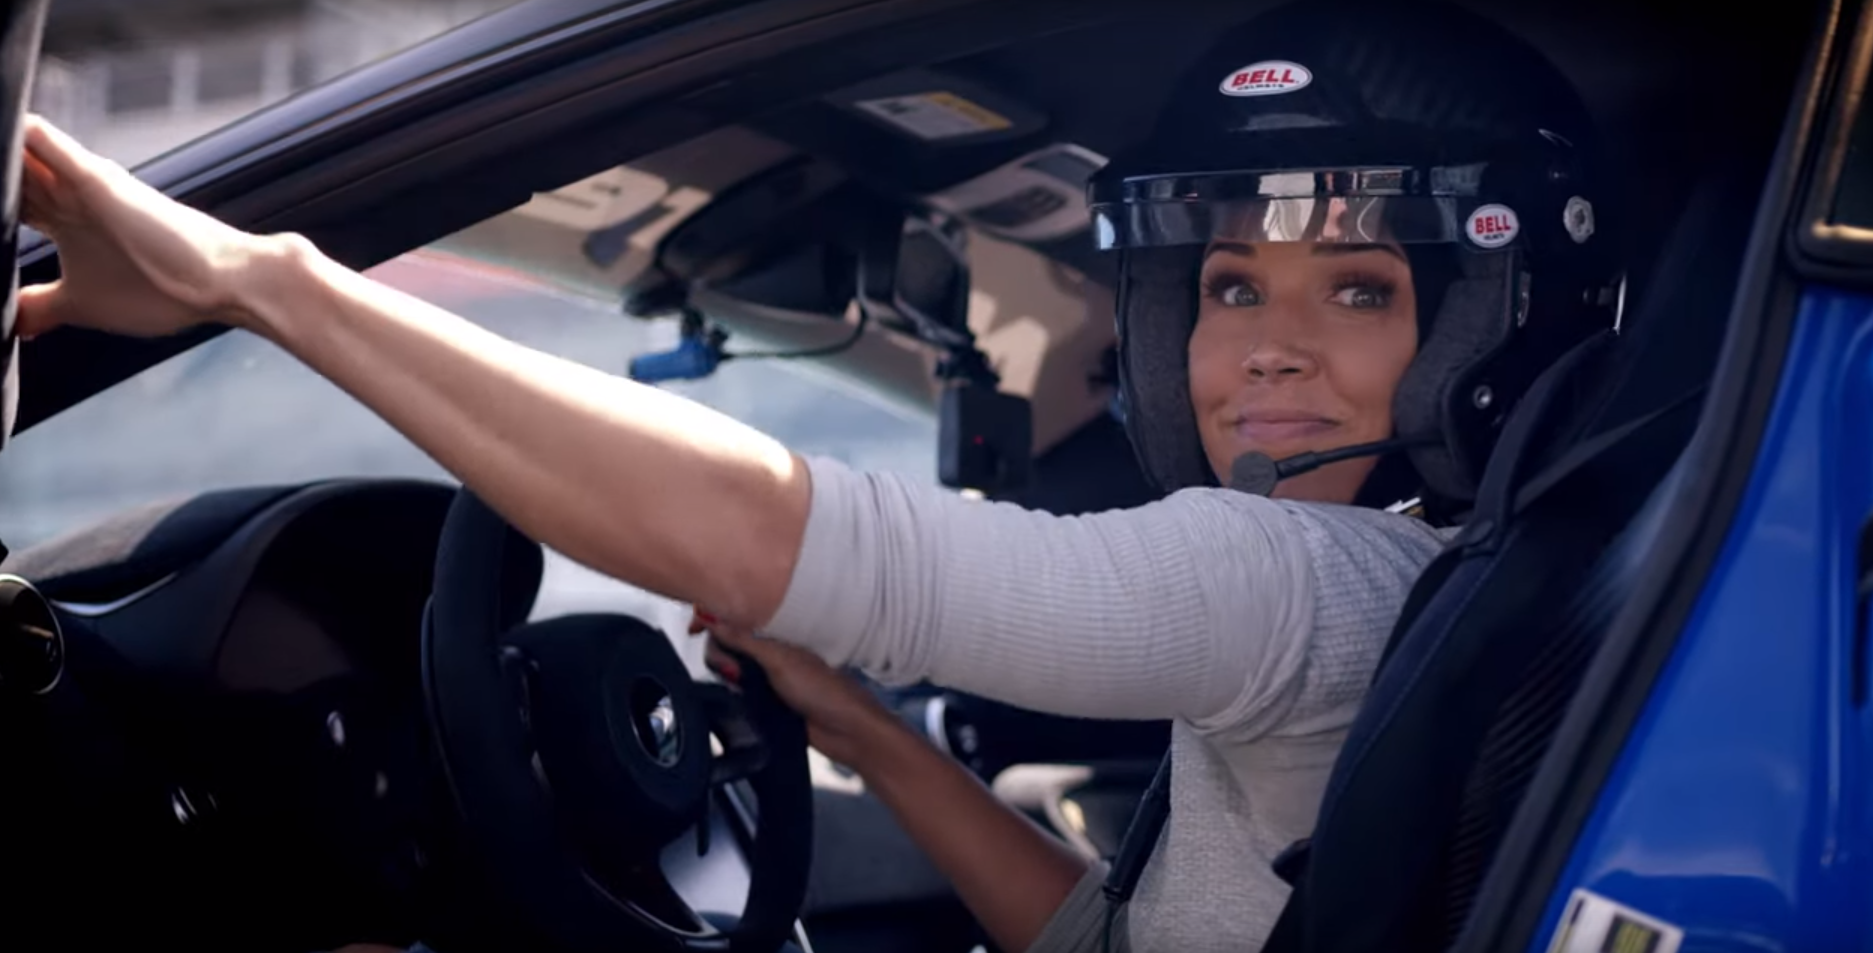 Olympian Lolo Jones drives the awesome McLaren 600LT in Indianapolis